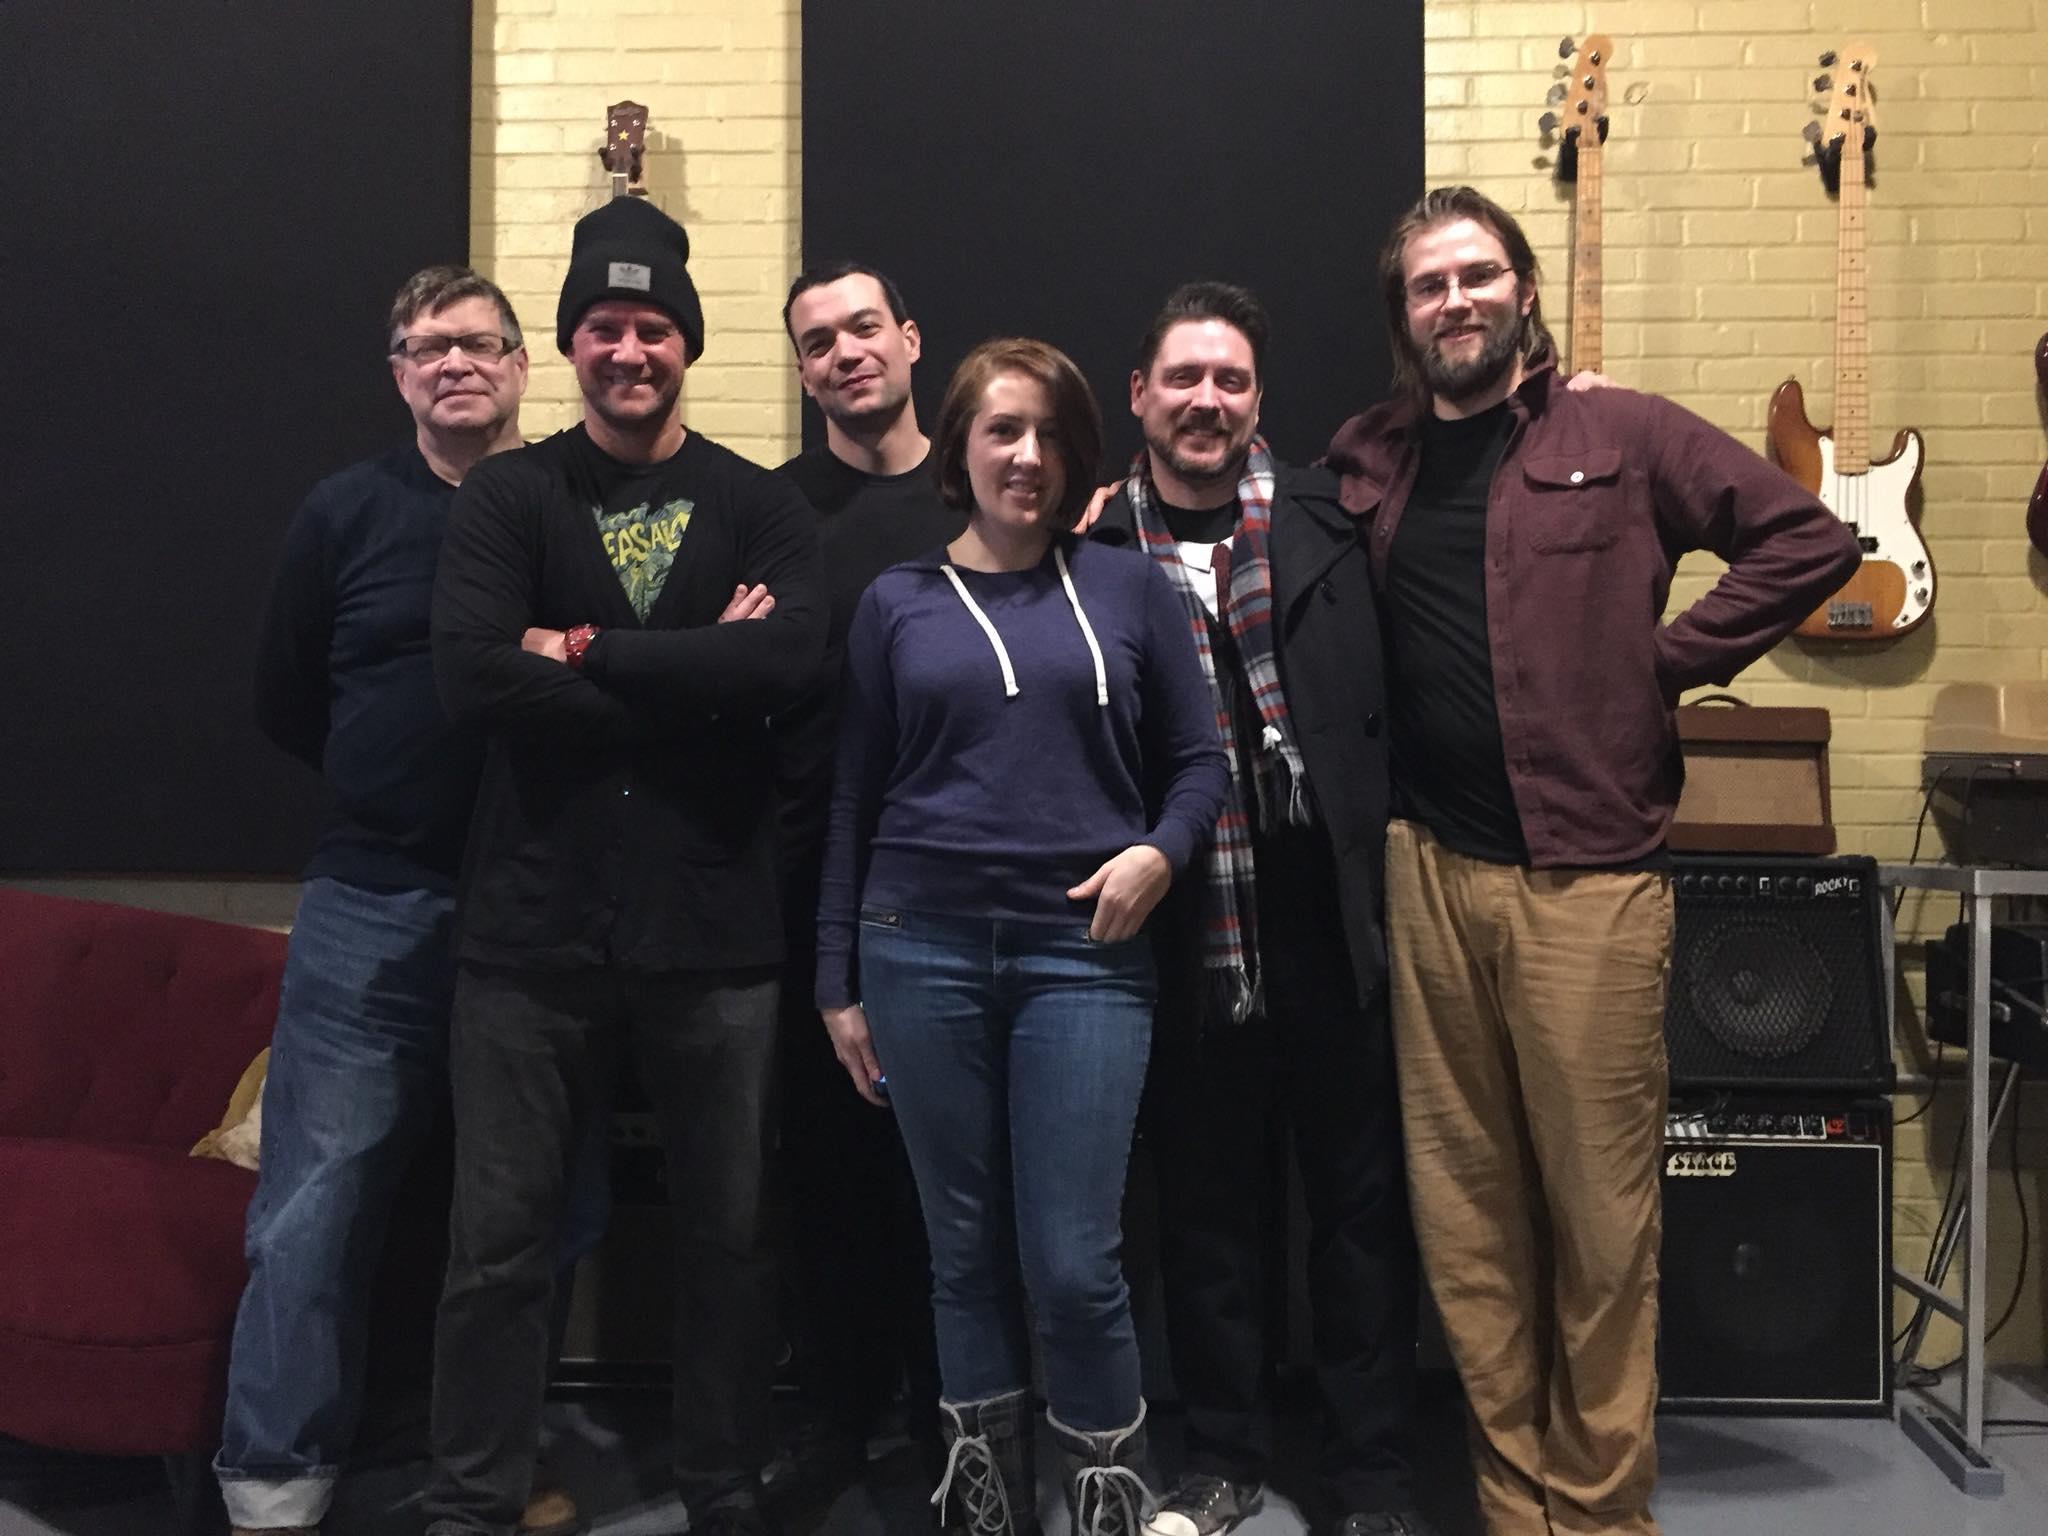 Cast and production team, from left: Joel Thingvall, Douglas Sidney, Tony Williamette, Billie Jo Konze, Chad David, and Paul Christian. (Some cast not present for this photo)